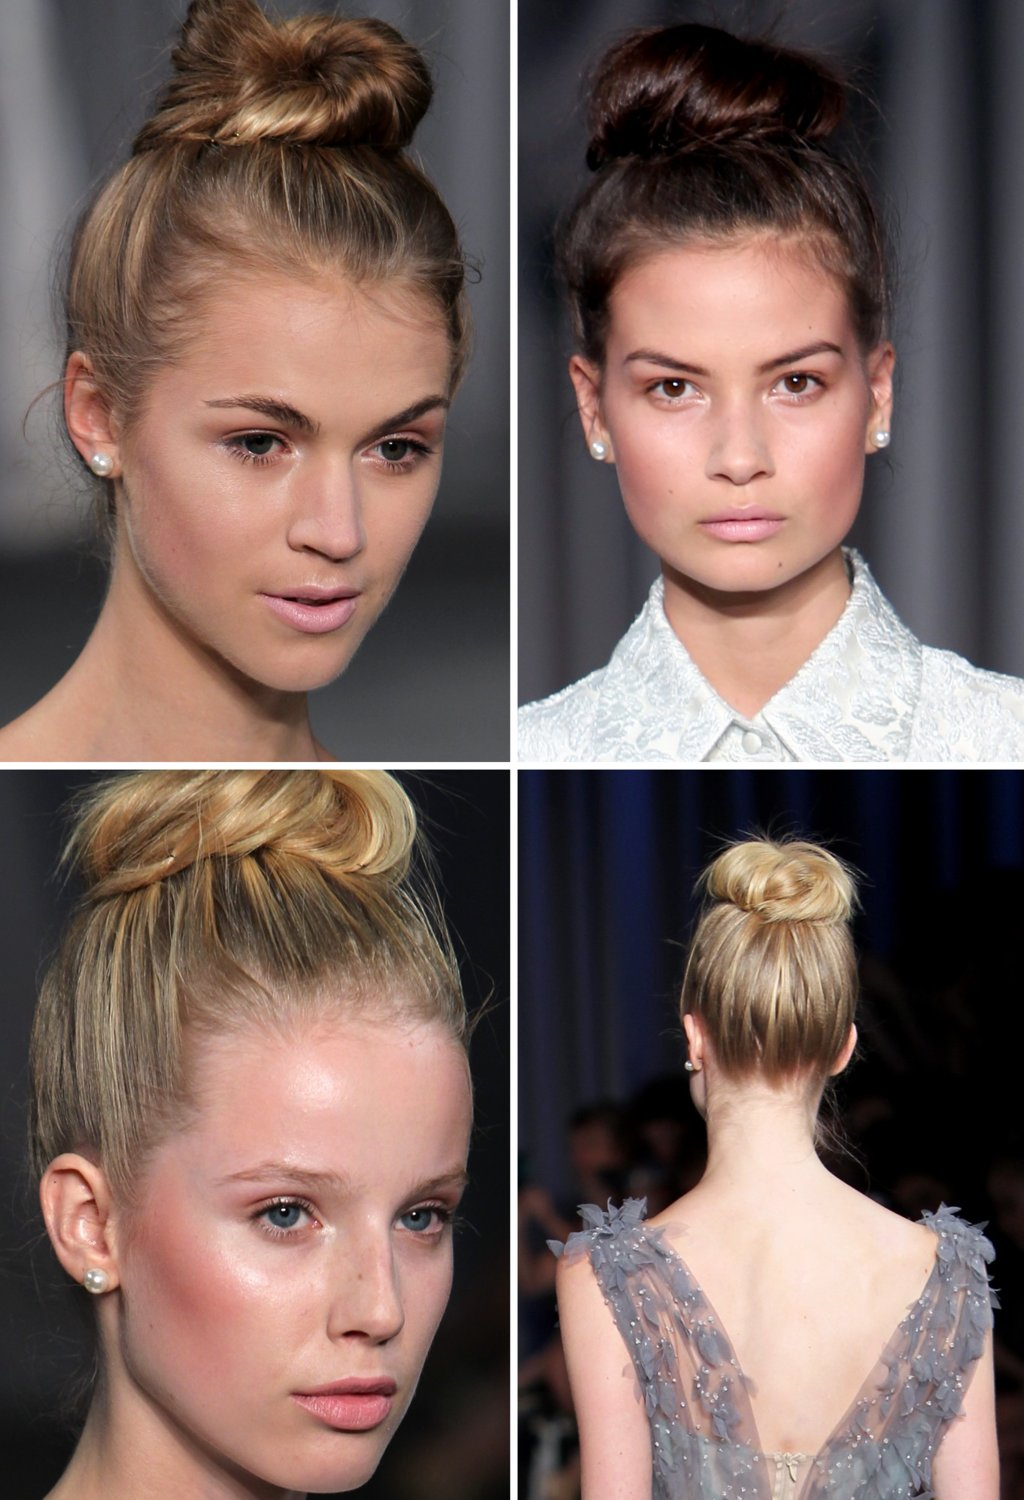 Bridal-beauty-inspiration-wedding-hair-makeup-off-the-catwalk-ballerina-beautiful.full